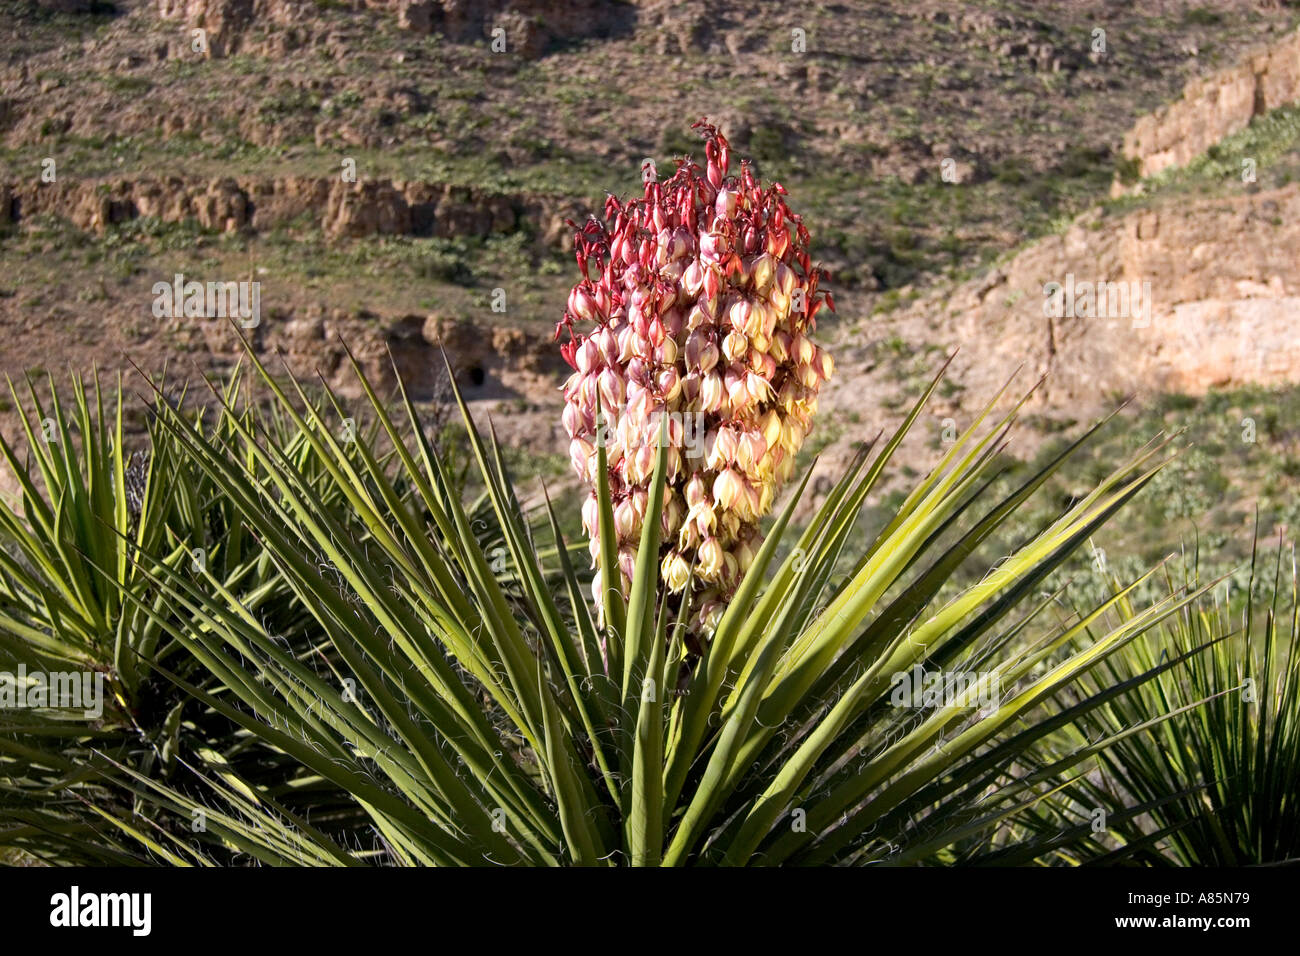 large blossom on a yucca plant in carlsbad caverns national park